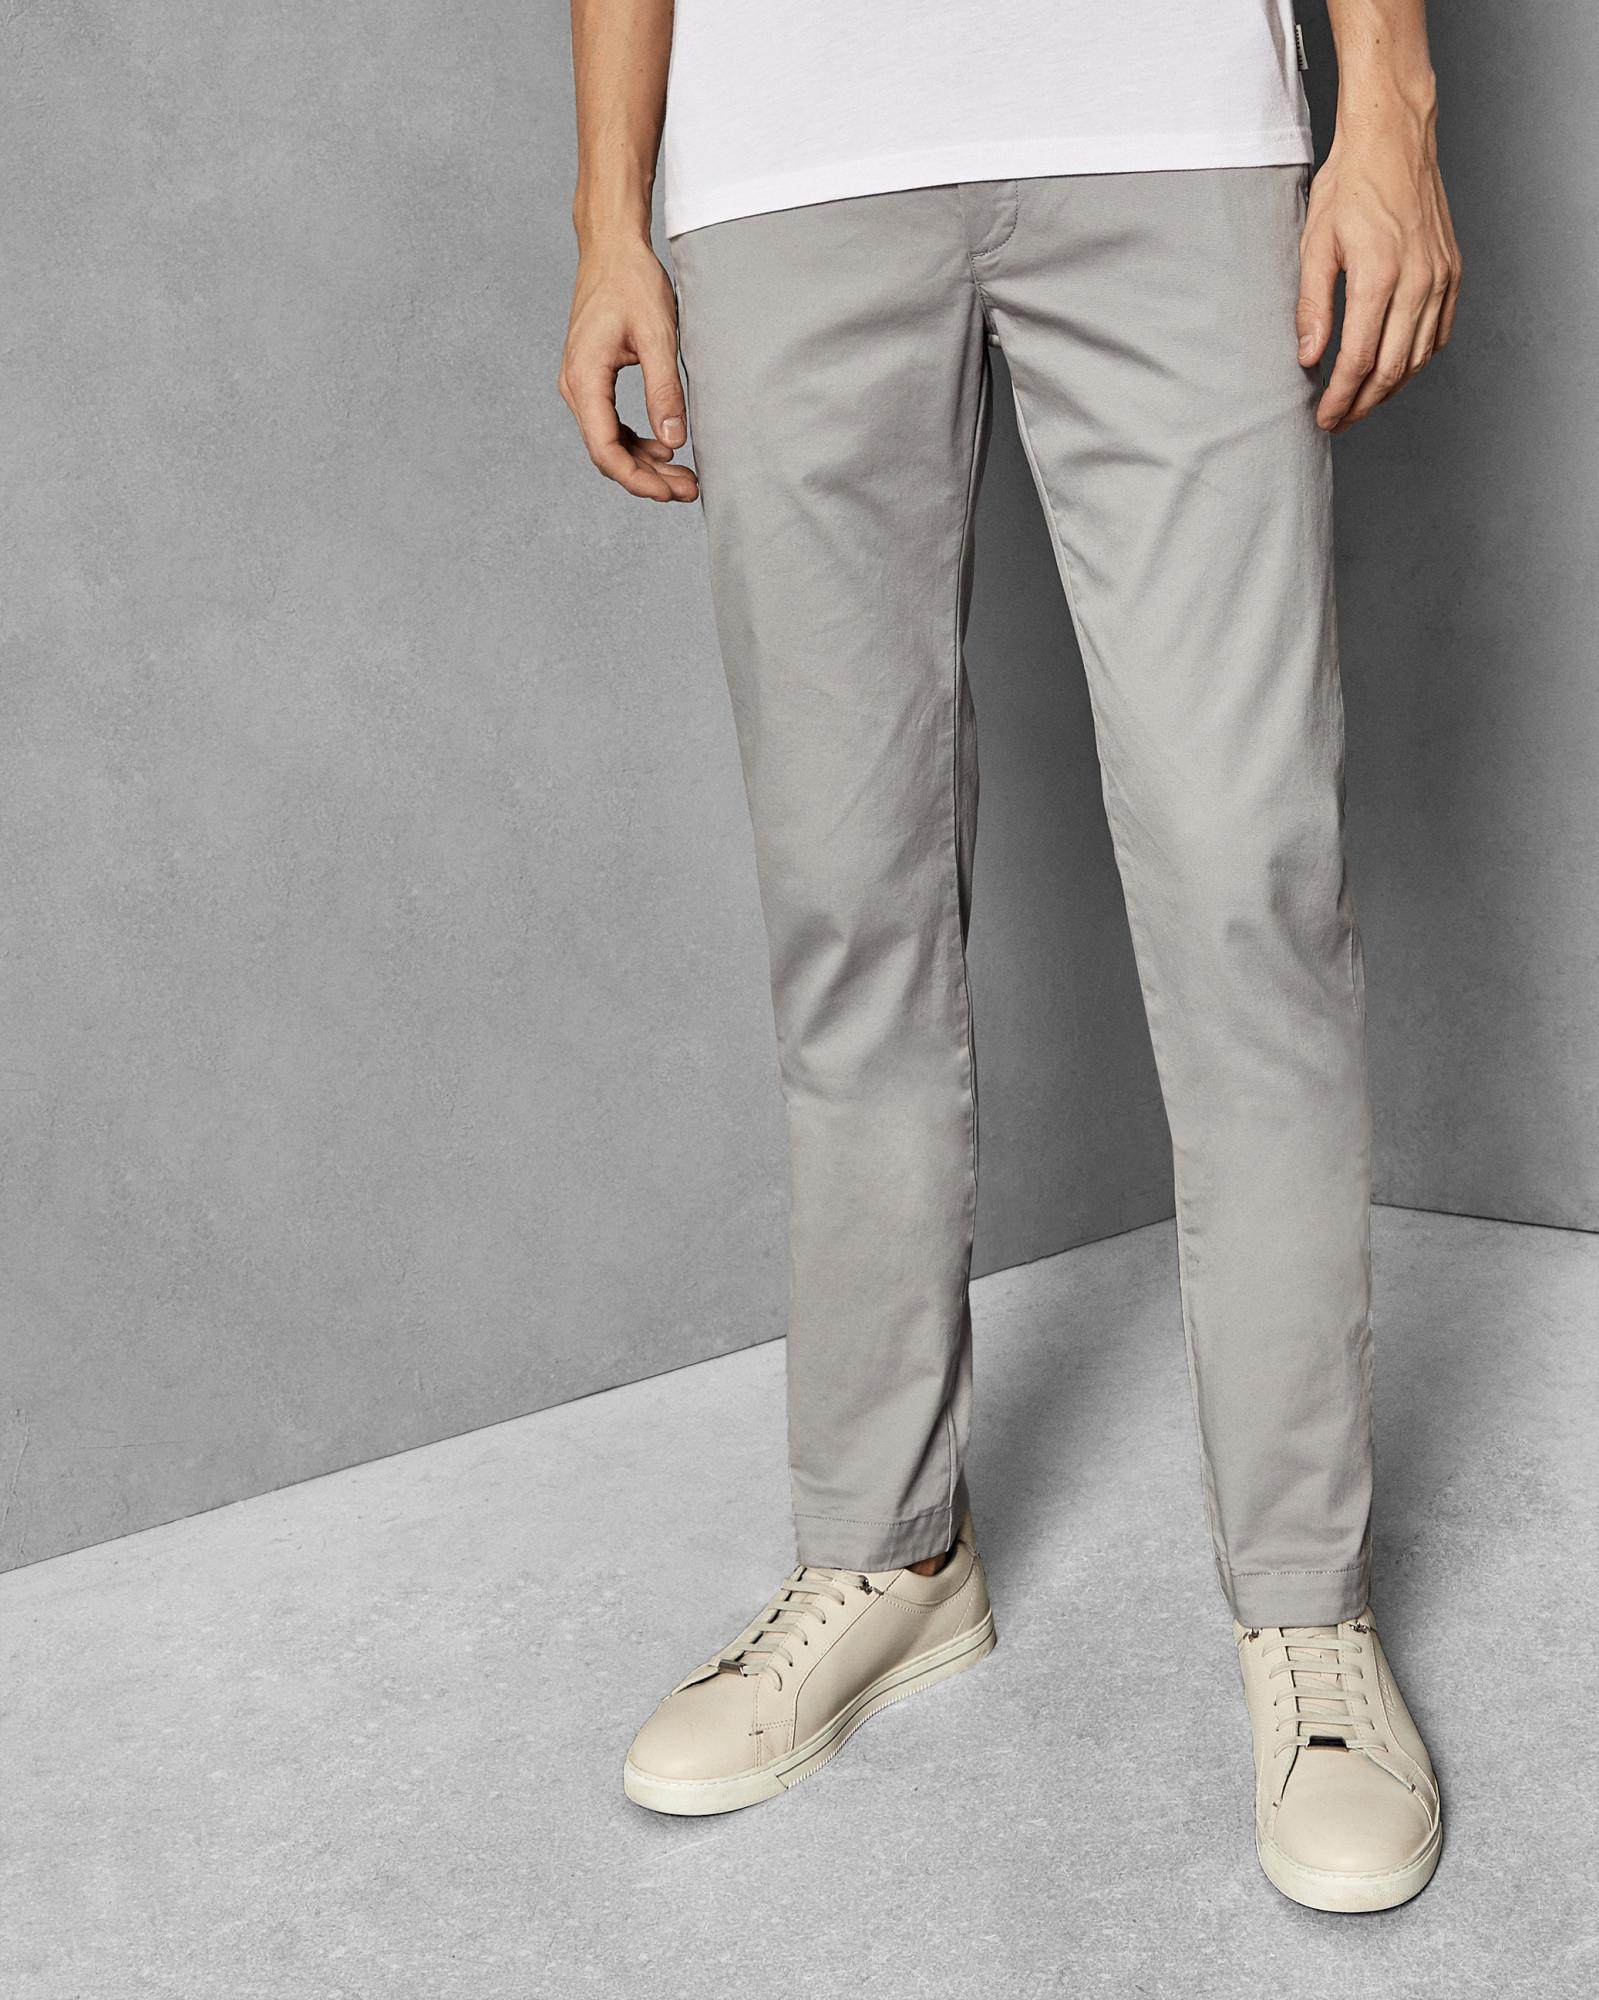 910e1de9f4edc0 Lyst - Ted Baker Slim Fit Cotton Chinos in Gray for Men